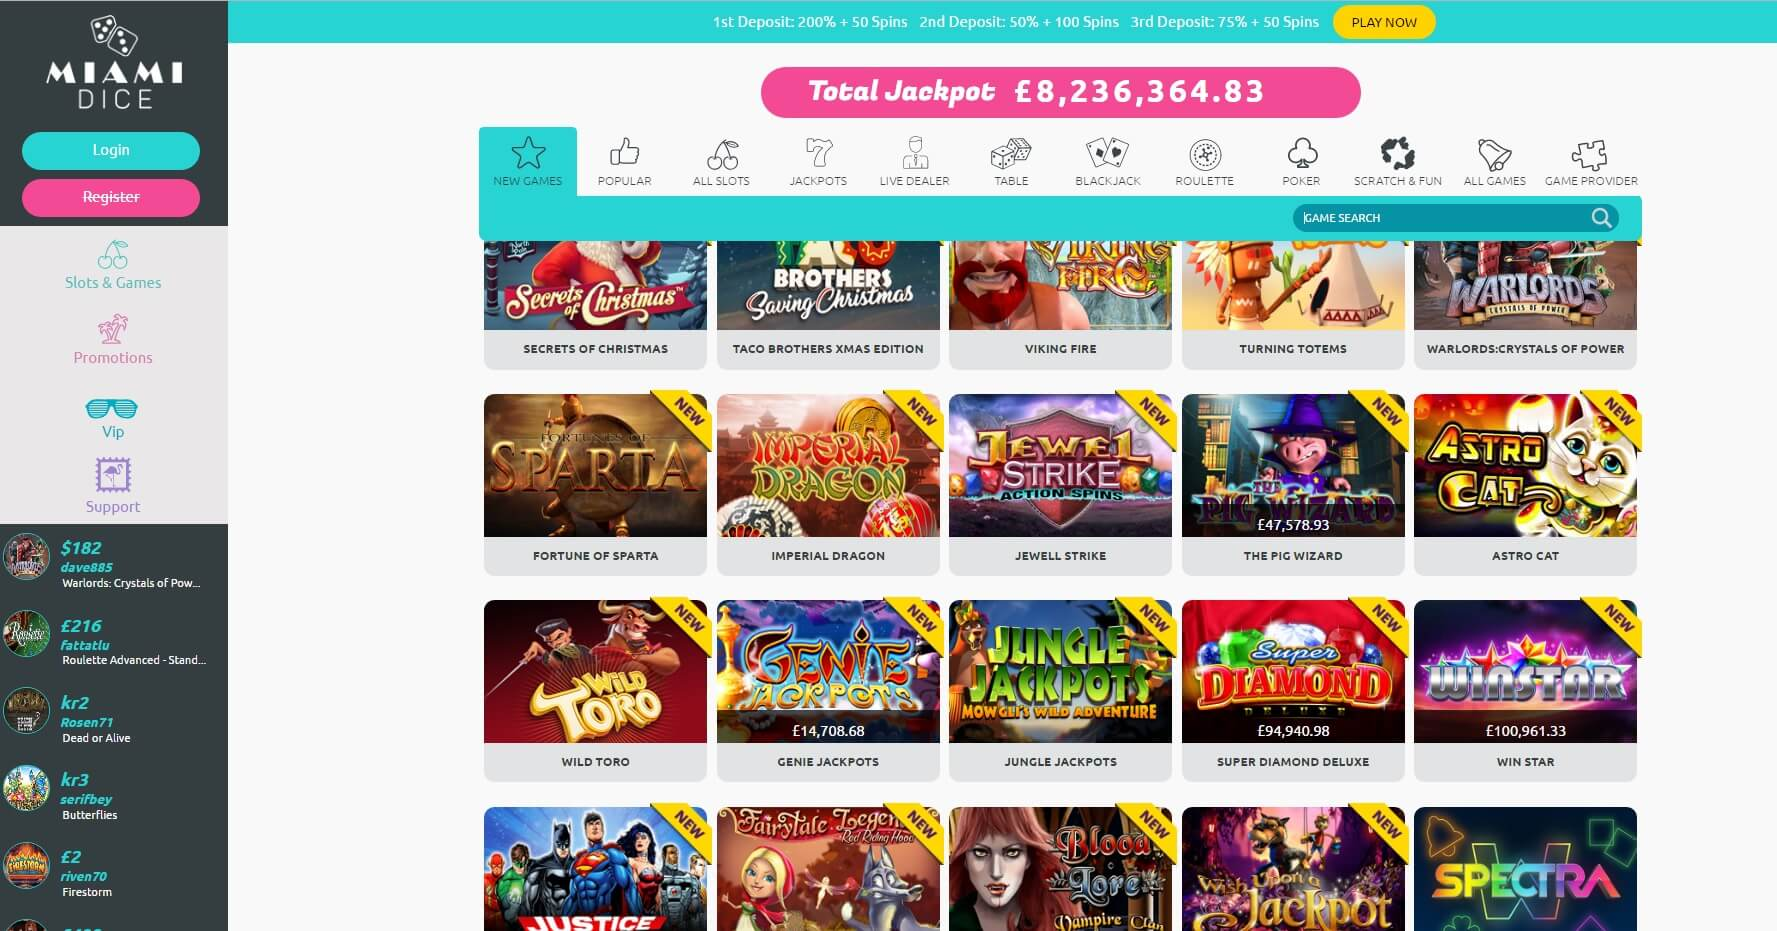 miami dice casino games and slots